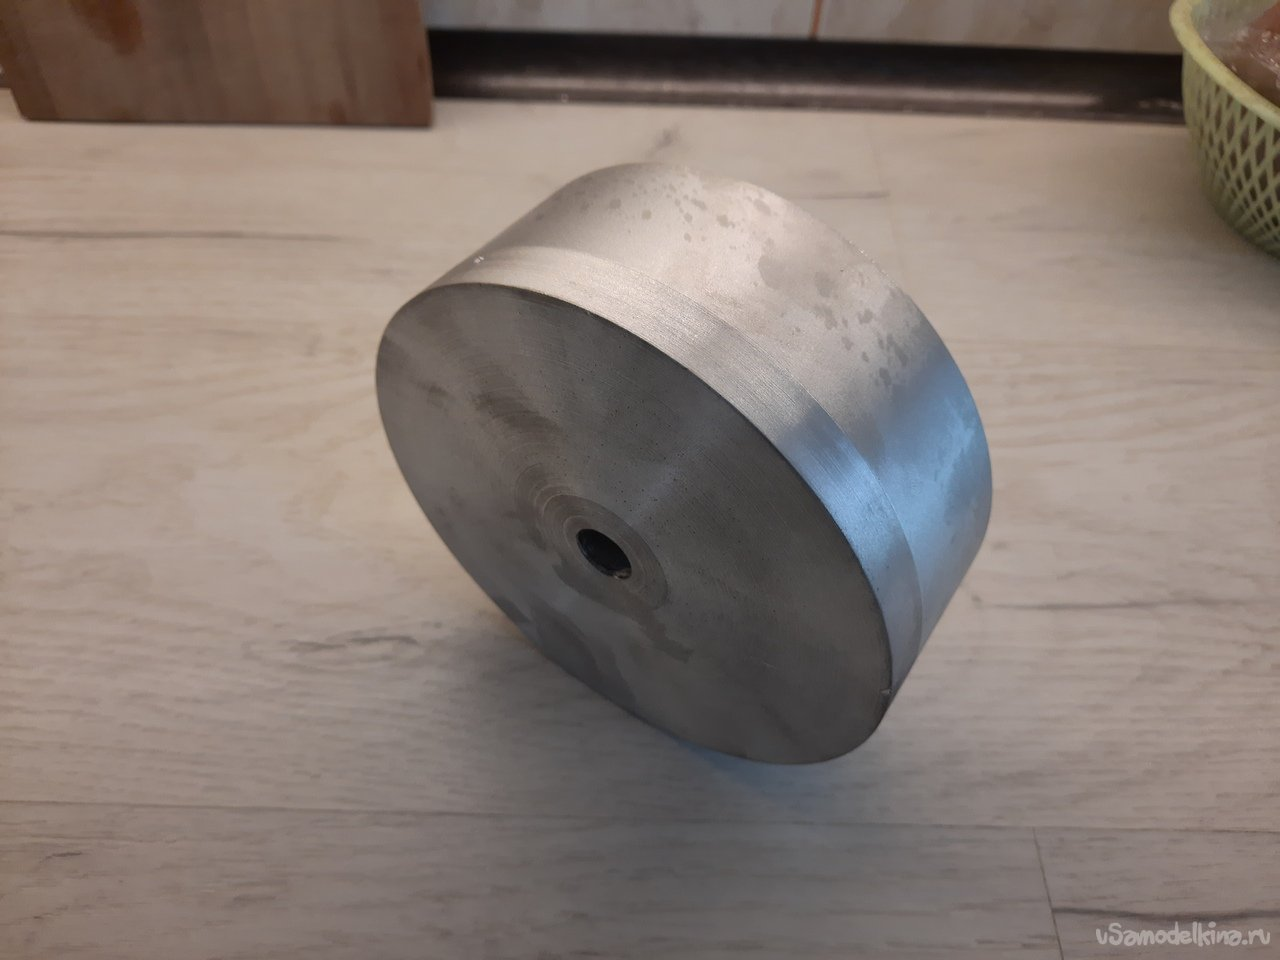 Casting rollers for a grinder or how I got it